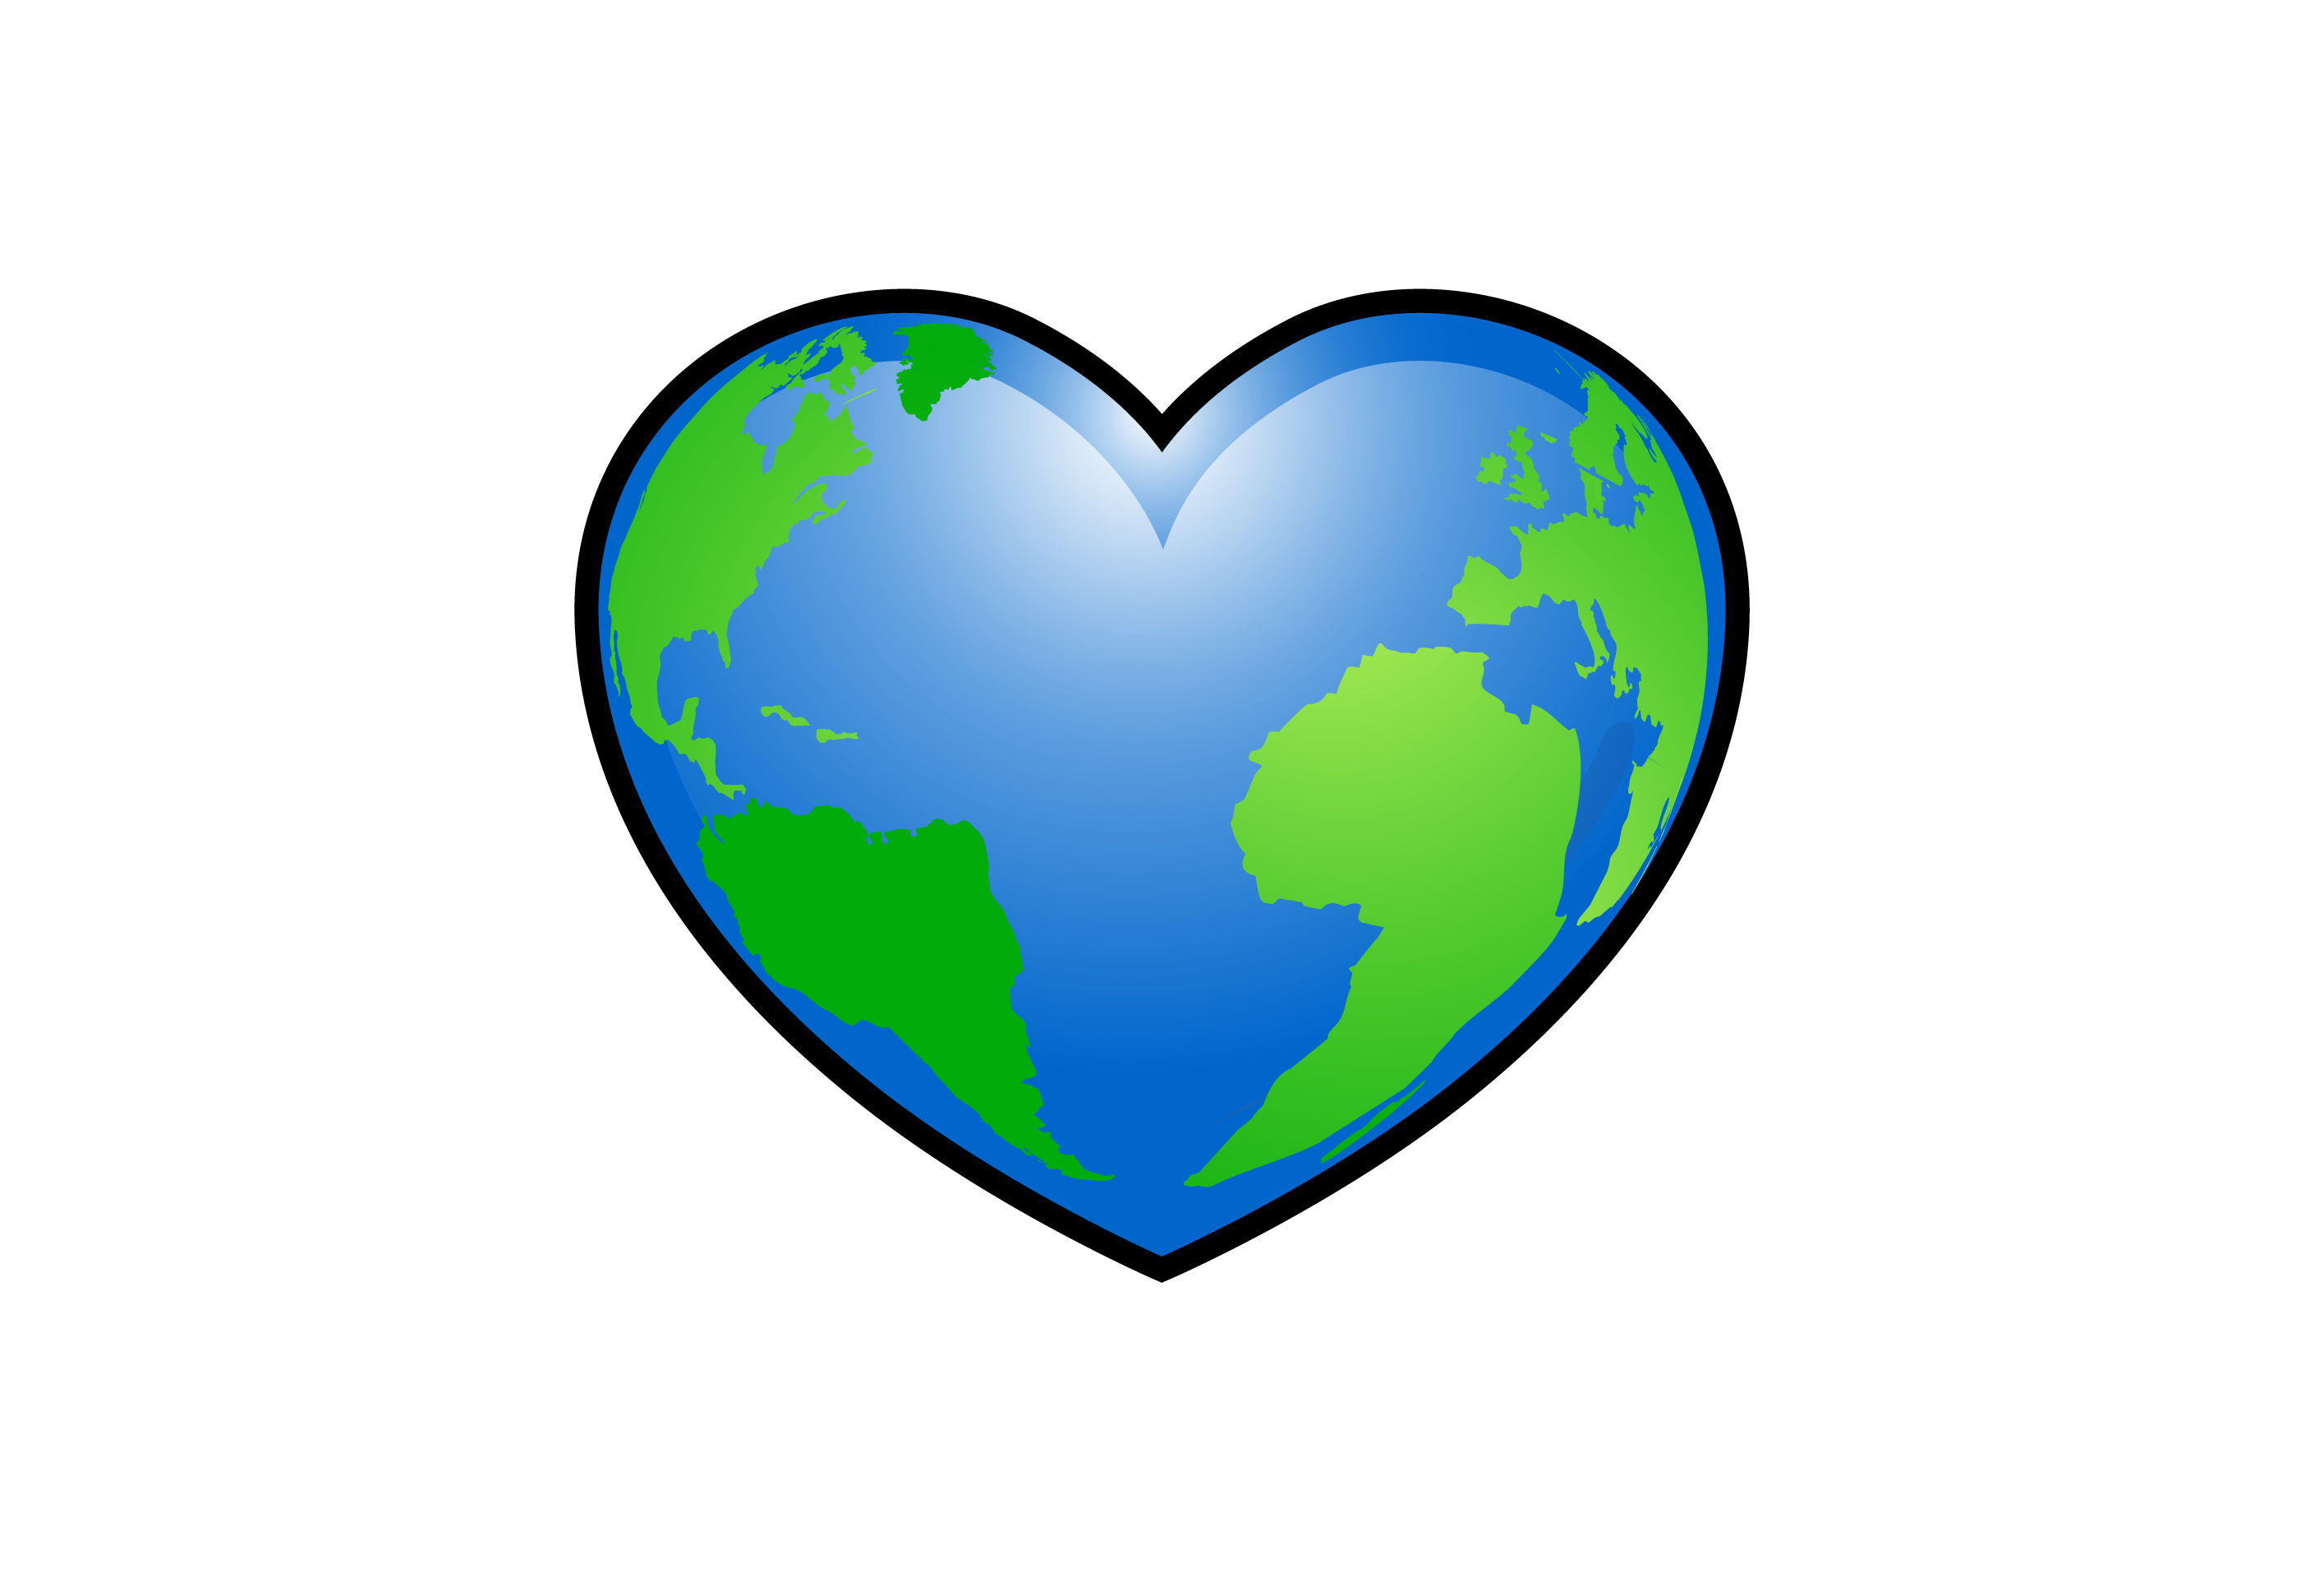 Earth clip environmentalist. Environment clipart heart cute